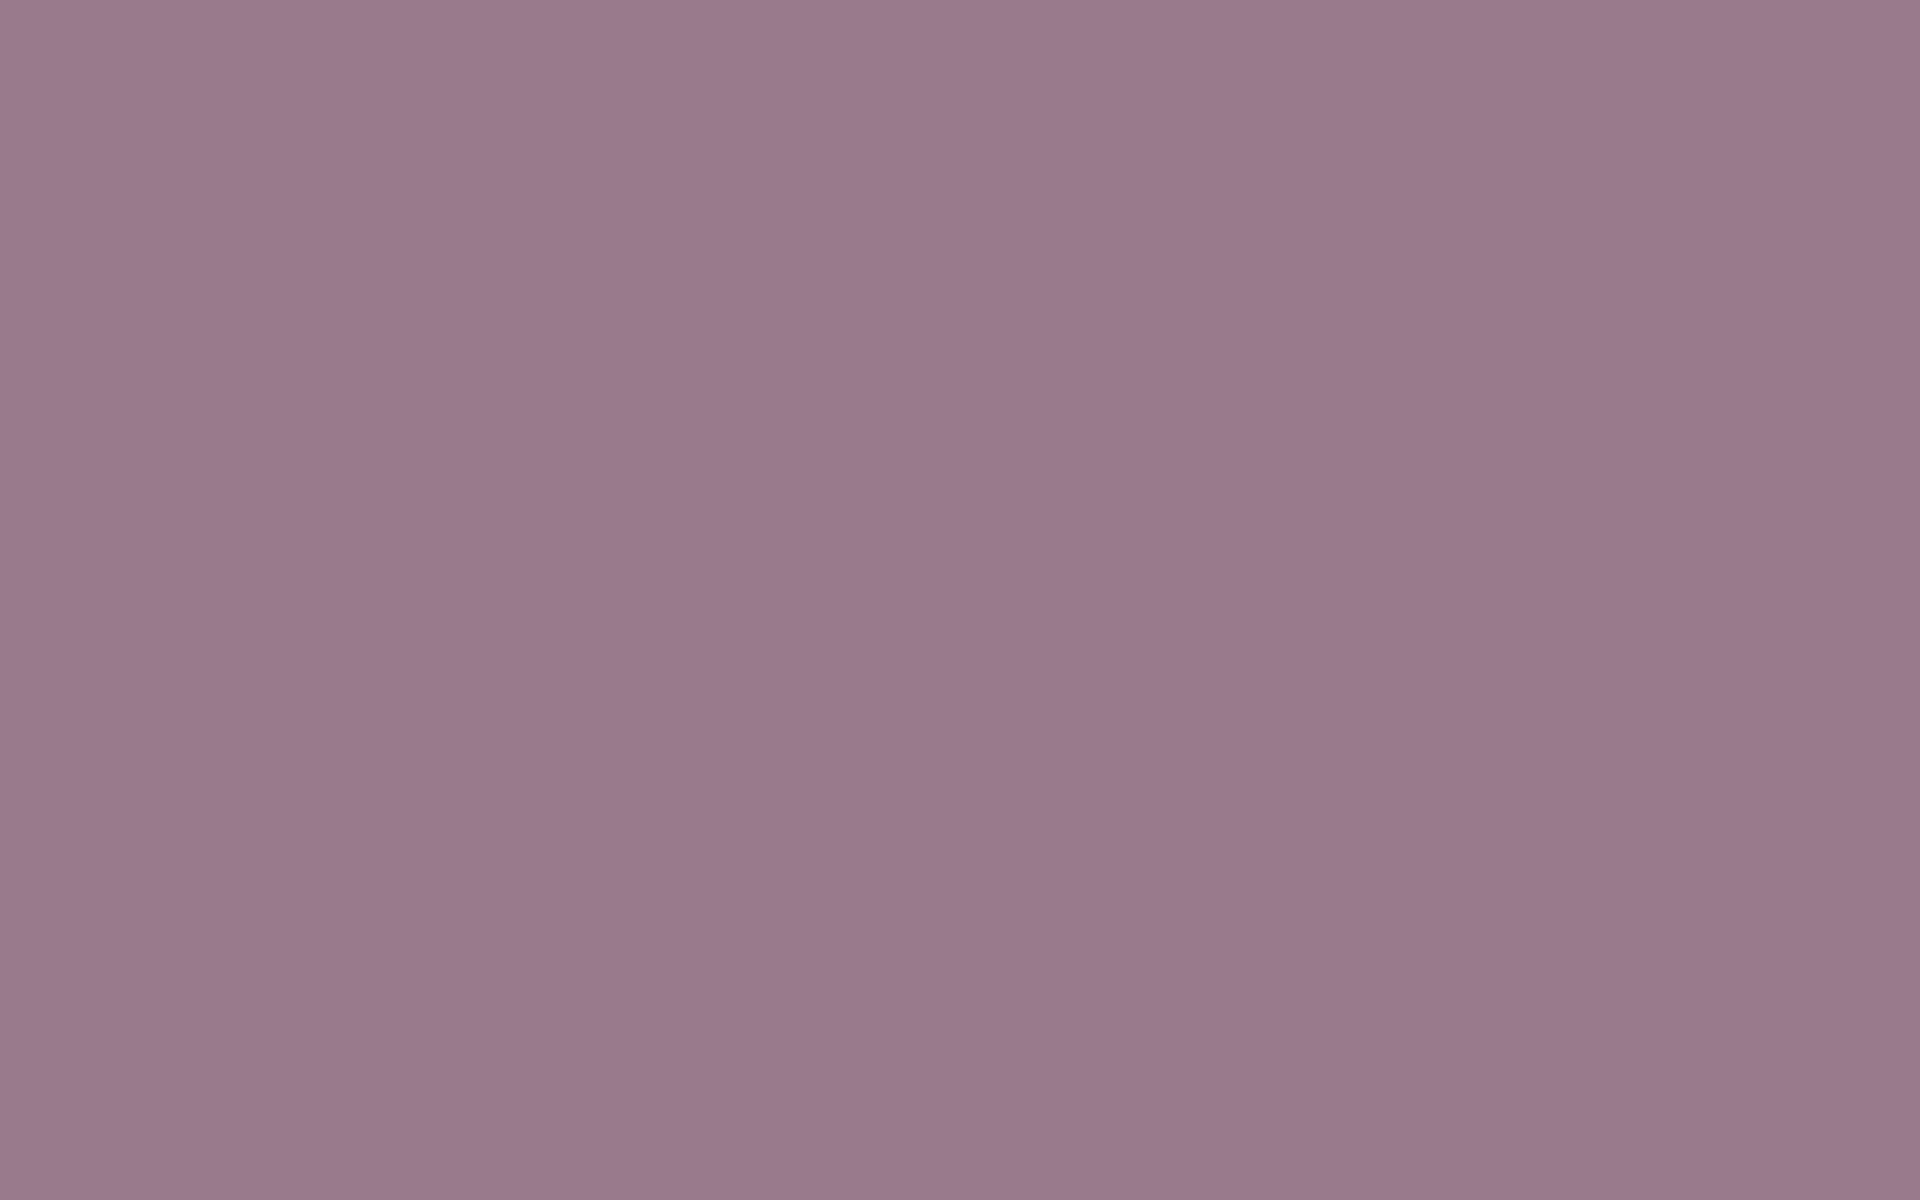 1920x1200 Mountbatten Pink Solid Color Background